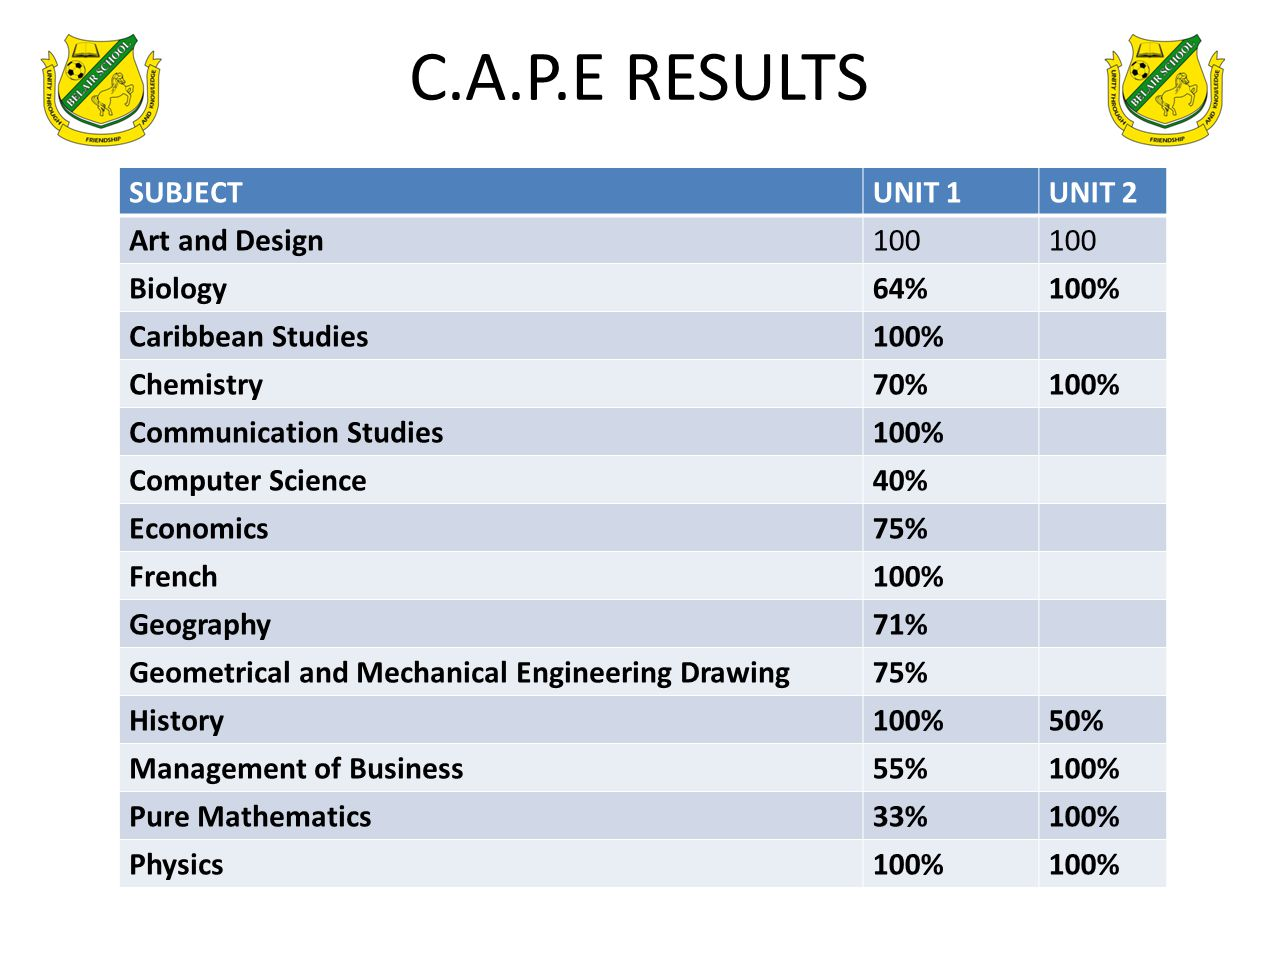 C.A.P.E RESULTS SUBJECTUNIT 1UNIT 2 Art and Design100 Biology64%100% Caribbean Studies100% Chemistry70%100% Communication Studies100% Computer Science40% Economics75% French100% Geography 71% Geometrical and Mechanical Engineering Drawing75% History100%50% Management of Business55%100% Pure Mathematics33%100% Physics100%